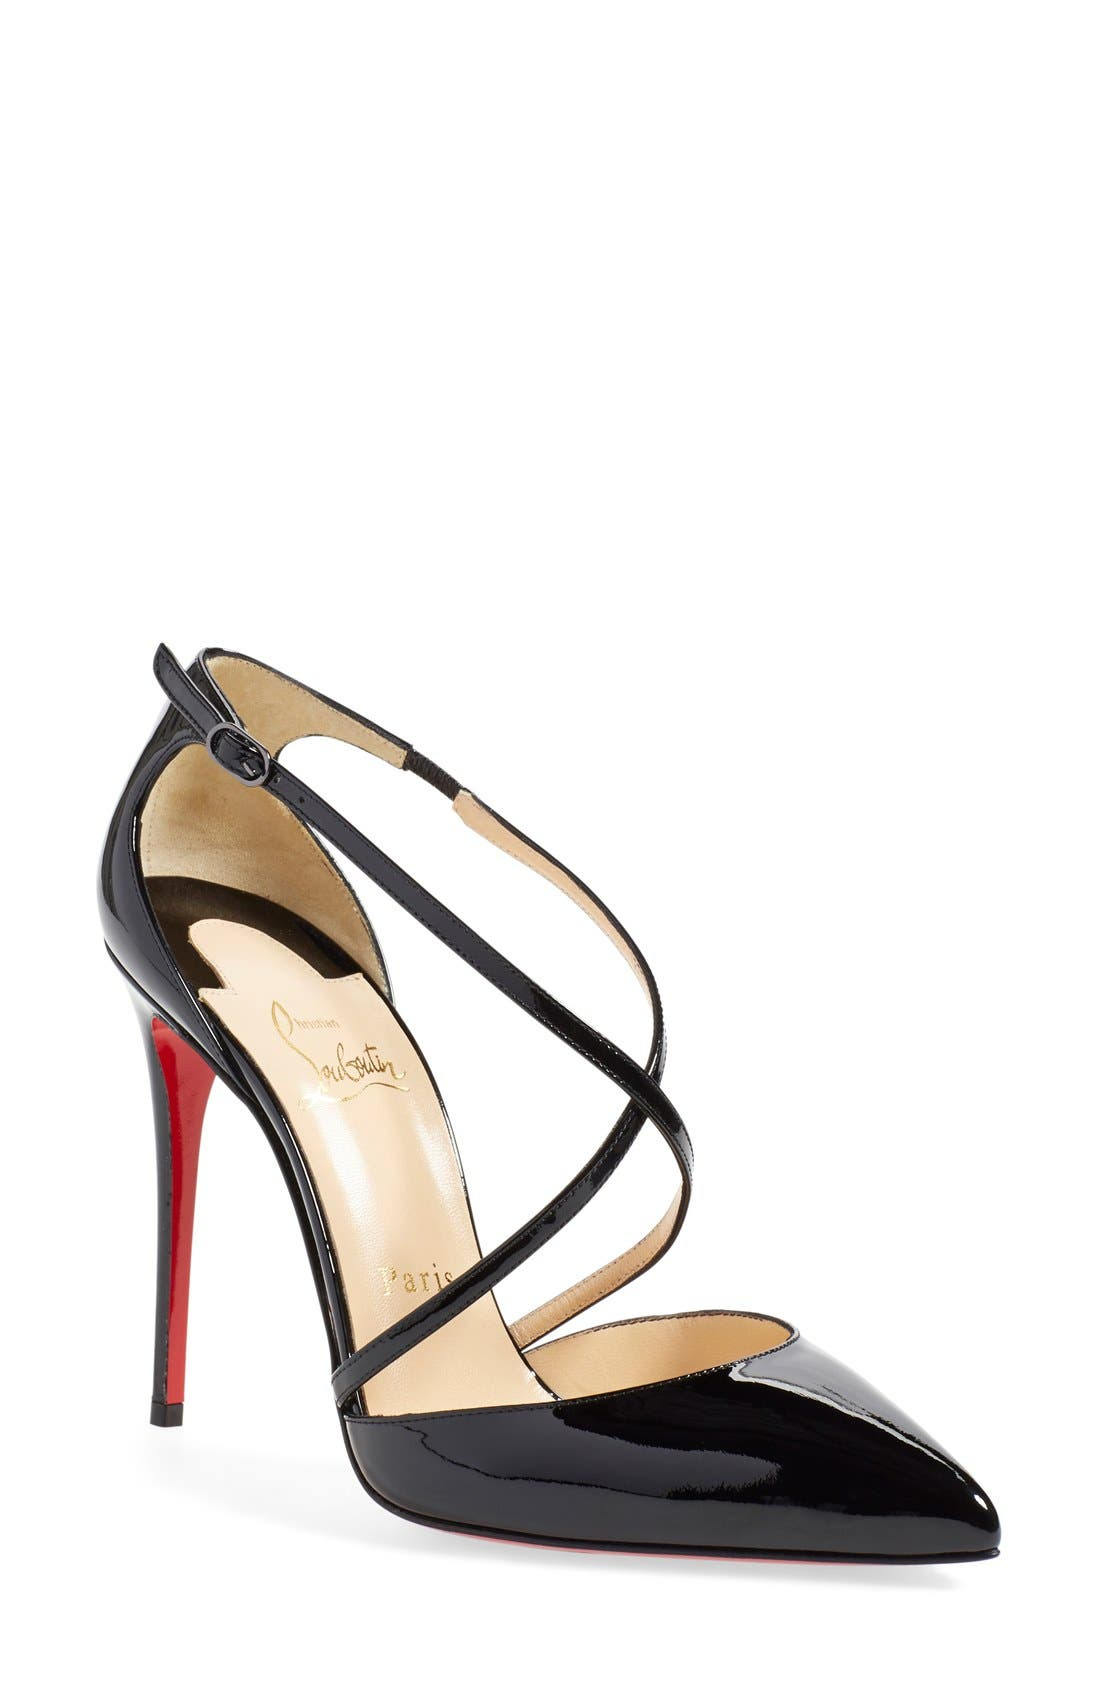 Alternate Image 1 Selected - Christian Louboutin 'Blake' Pointy Toe Pump